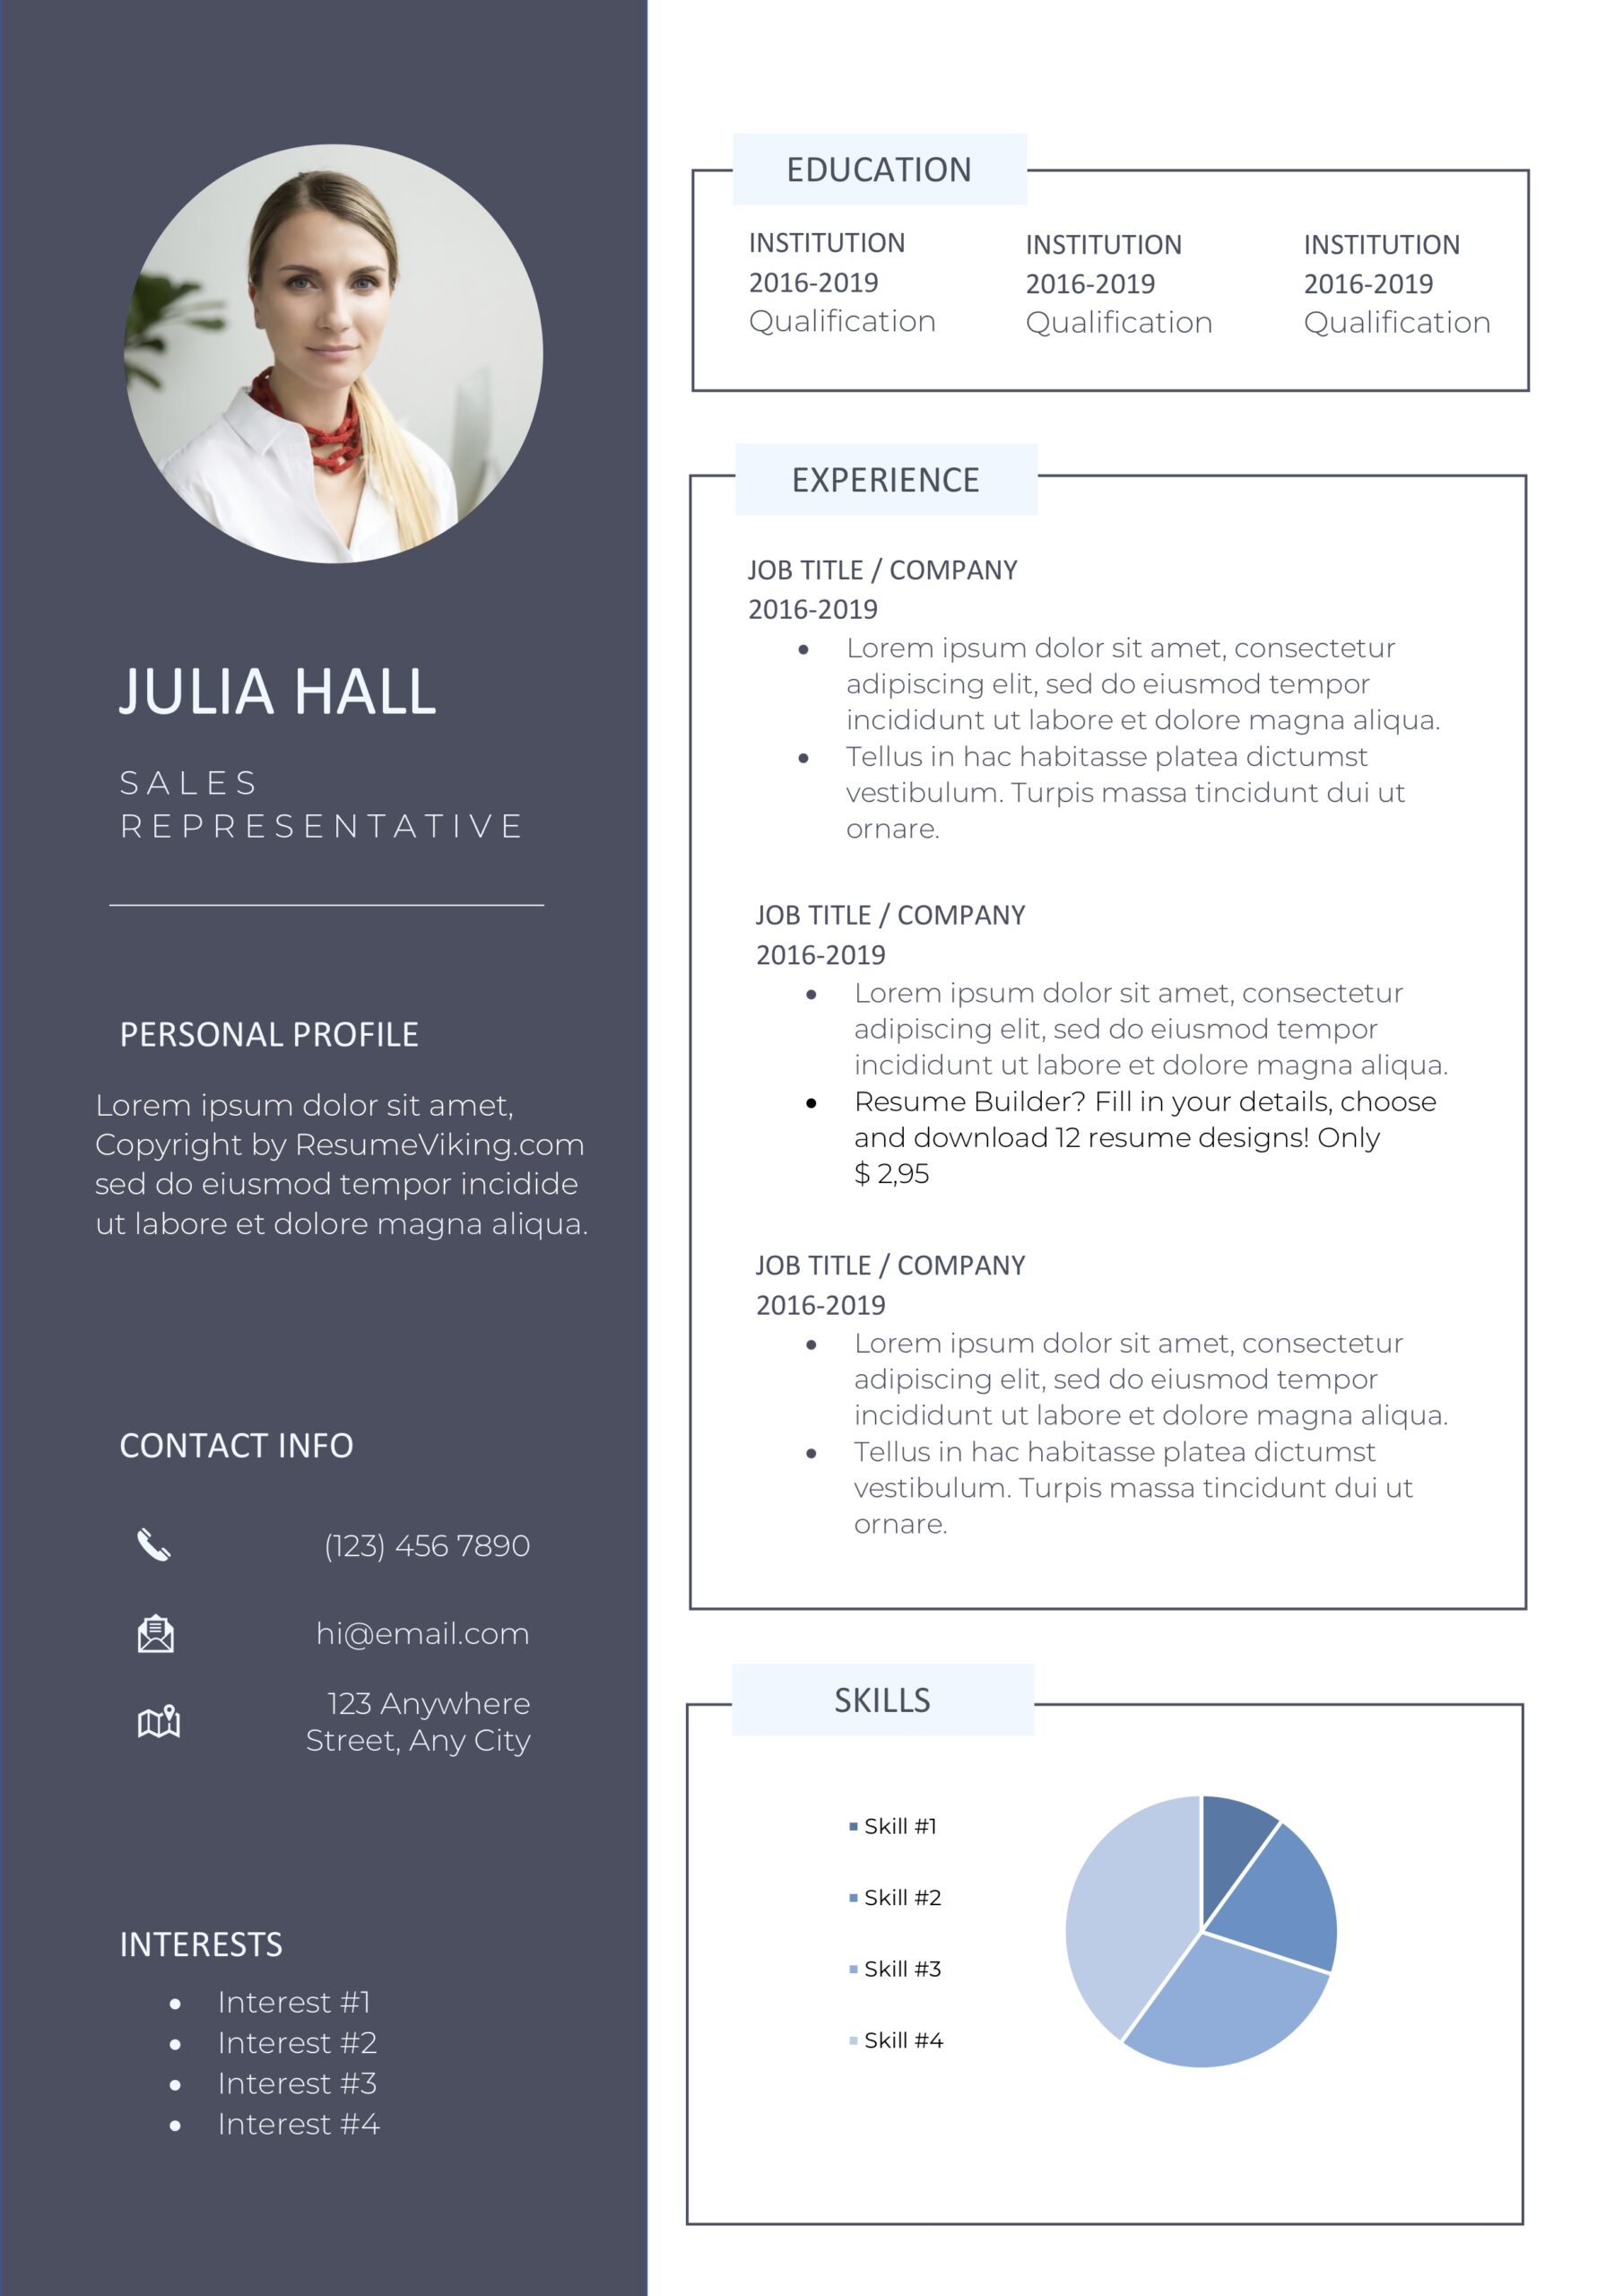 resume templates pdf word free downloads and guides grace resumeviking current job Resume Free Resume Templates 2020 Download